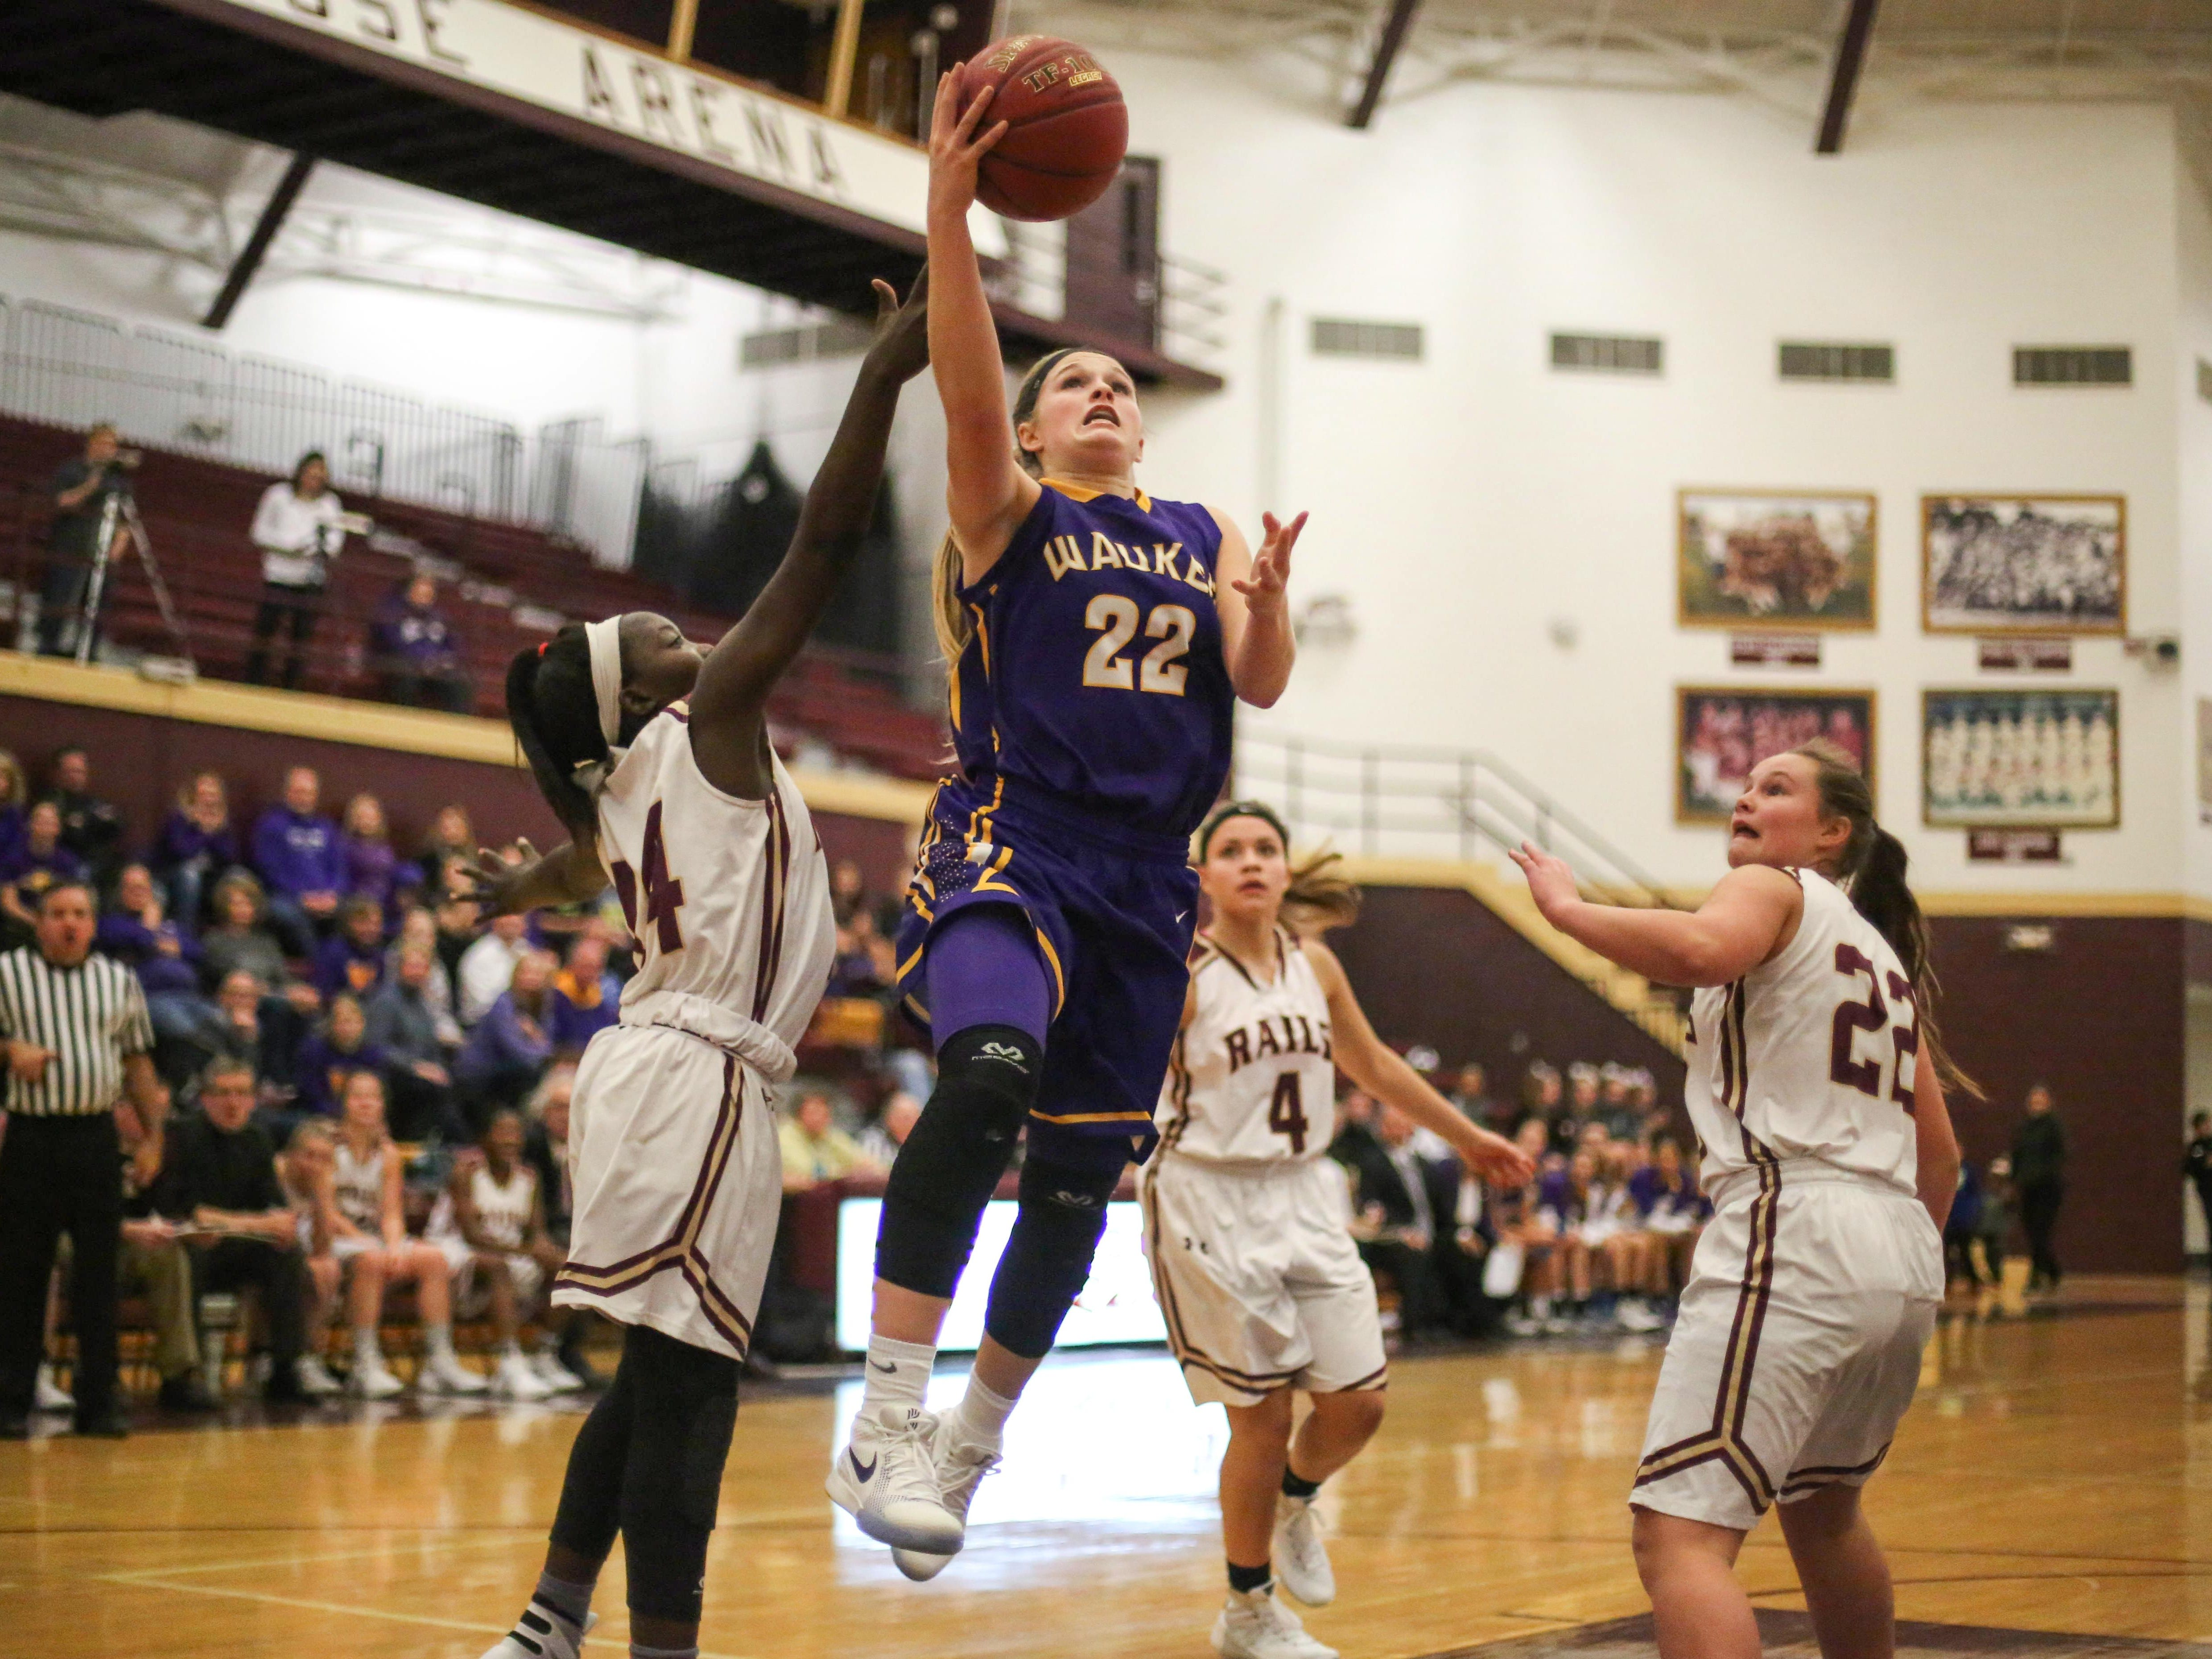 Waukee junior Callie Littlefield drives to the hoop against Lincoln on Tuesday. Littlefield scored a game-high 18 points, and the Warriors cruised to an 80-25 victory.